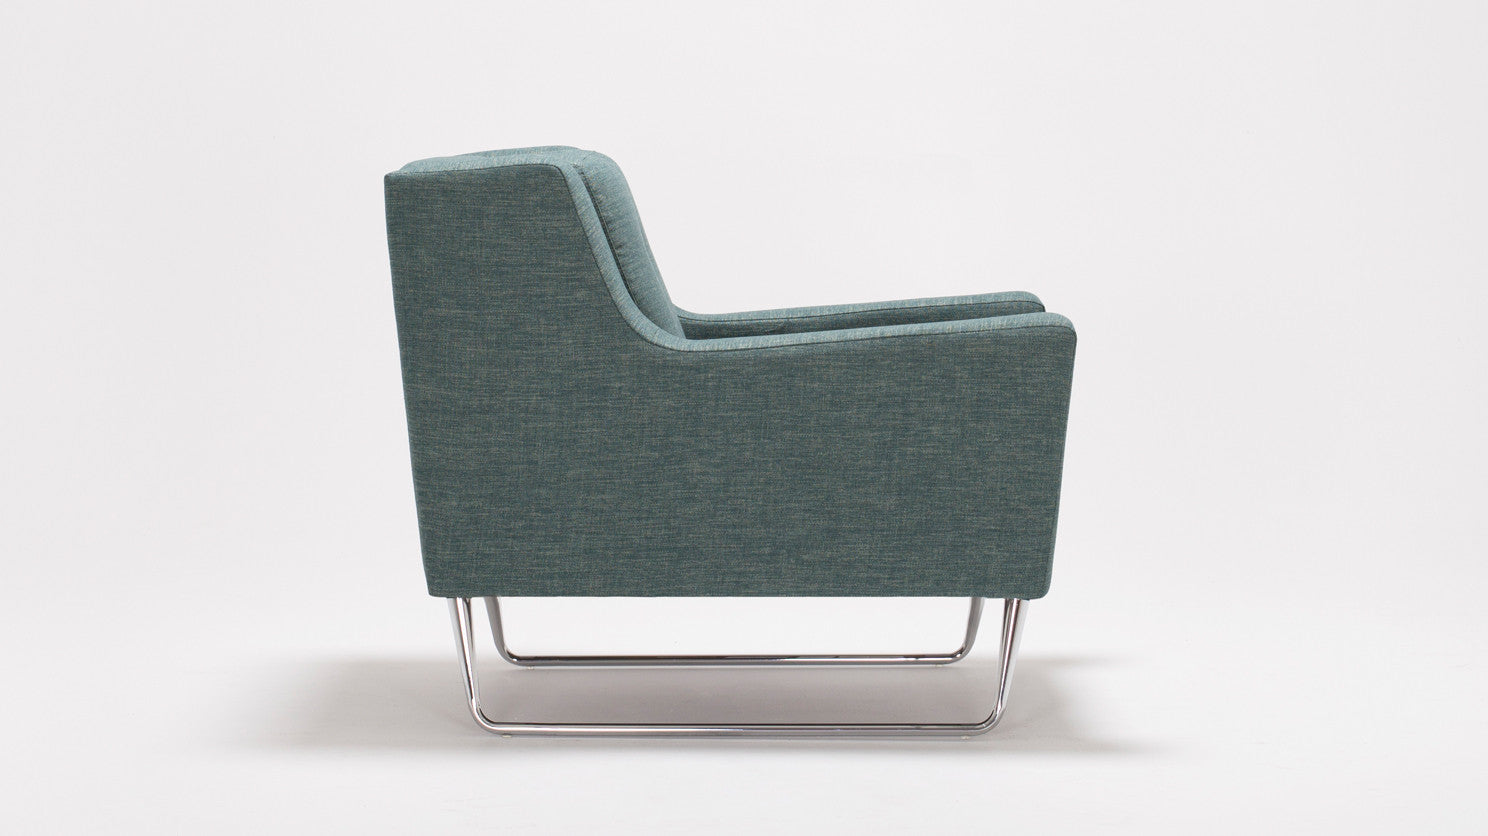 Elise Chair By Eq3 Available At Five Elements Furniture